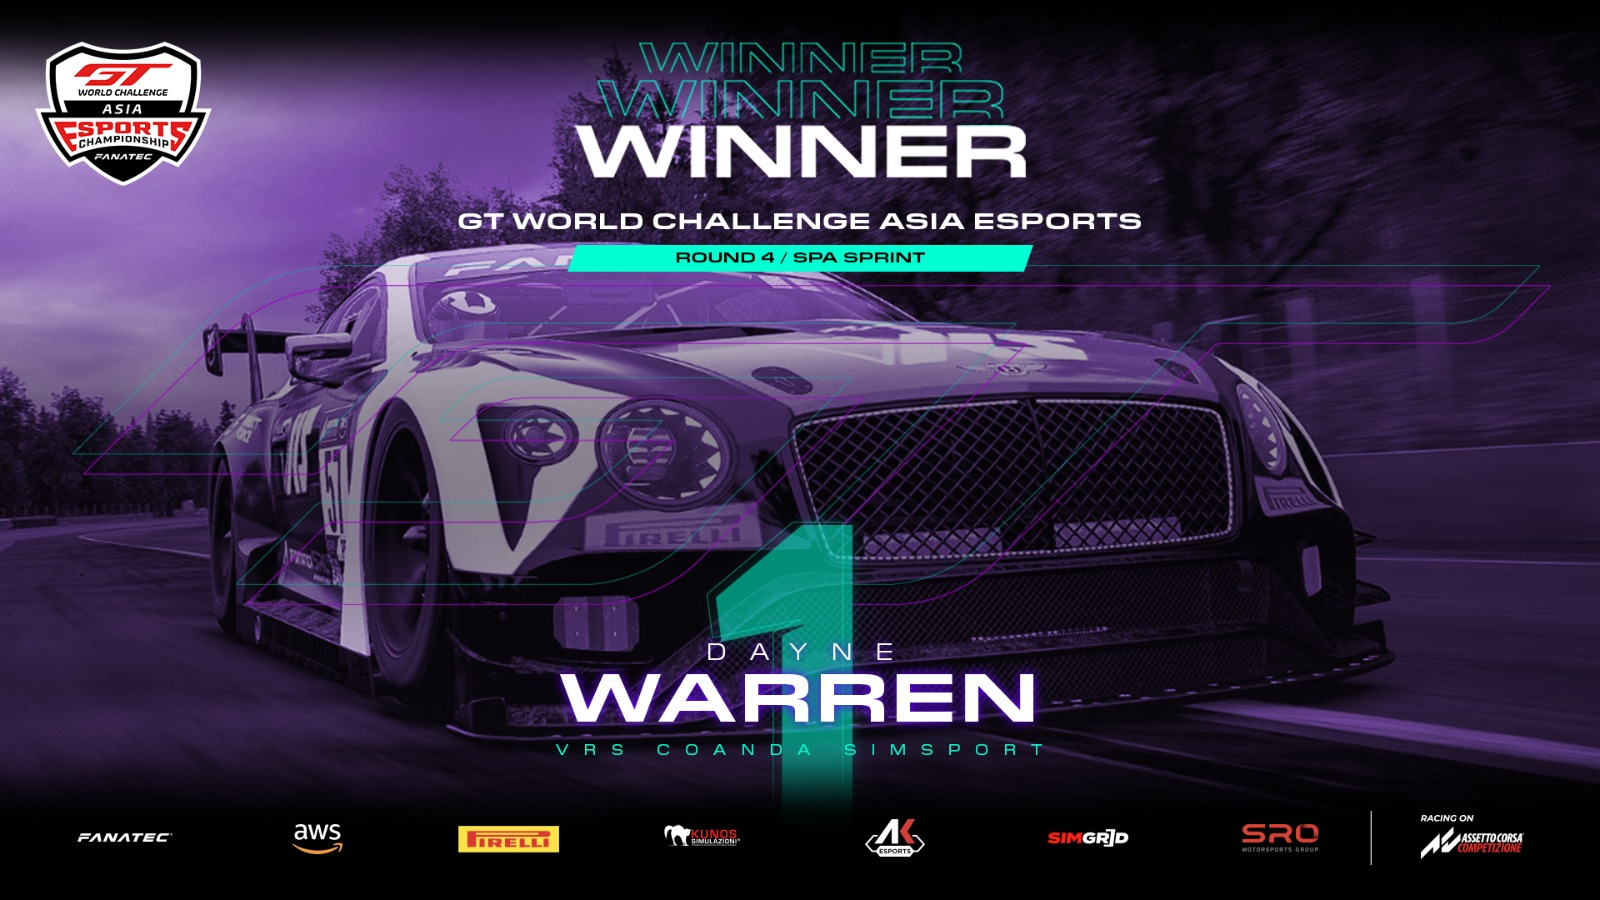 SRO E-sports - Flawless Warren wins again to clinch GT World Challenge Asia Esports Sprint Series crown at Spa